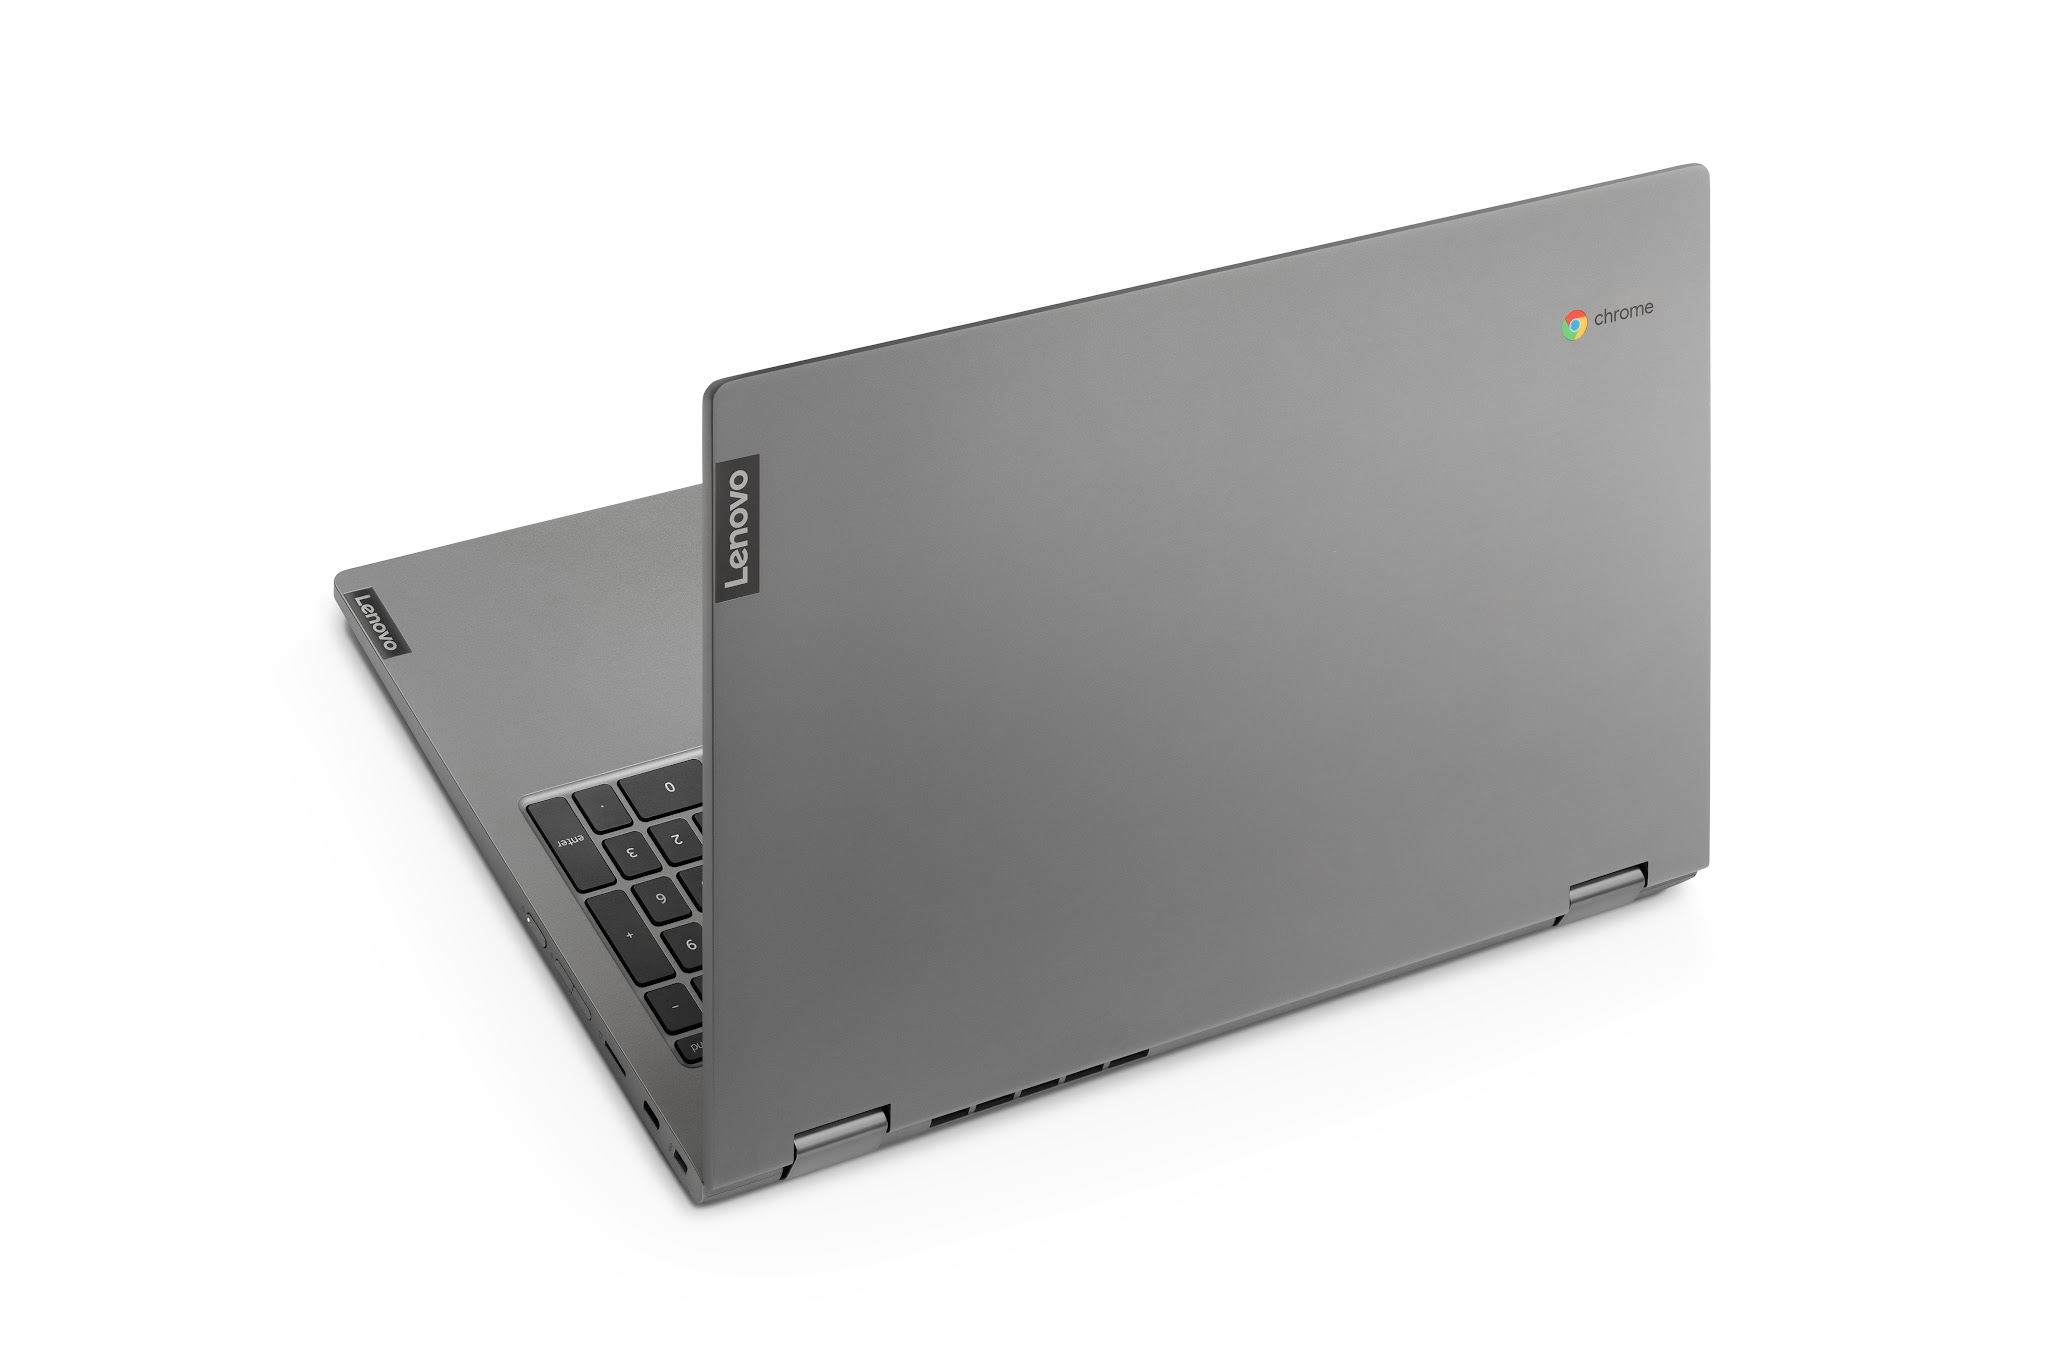 Lenovo Chromebook C340-15 - photo 13